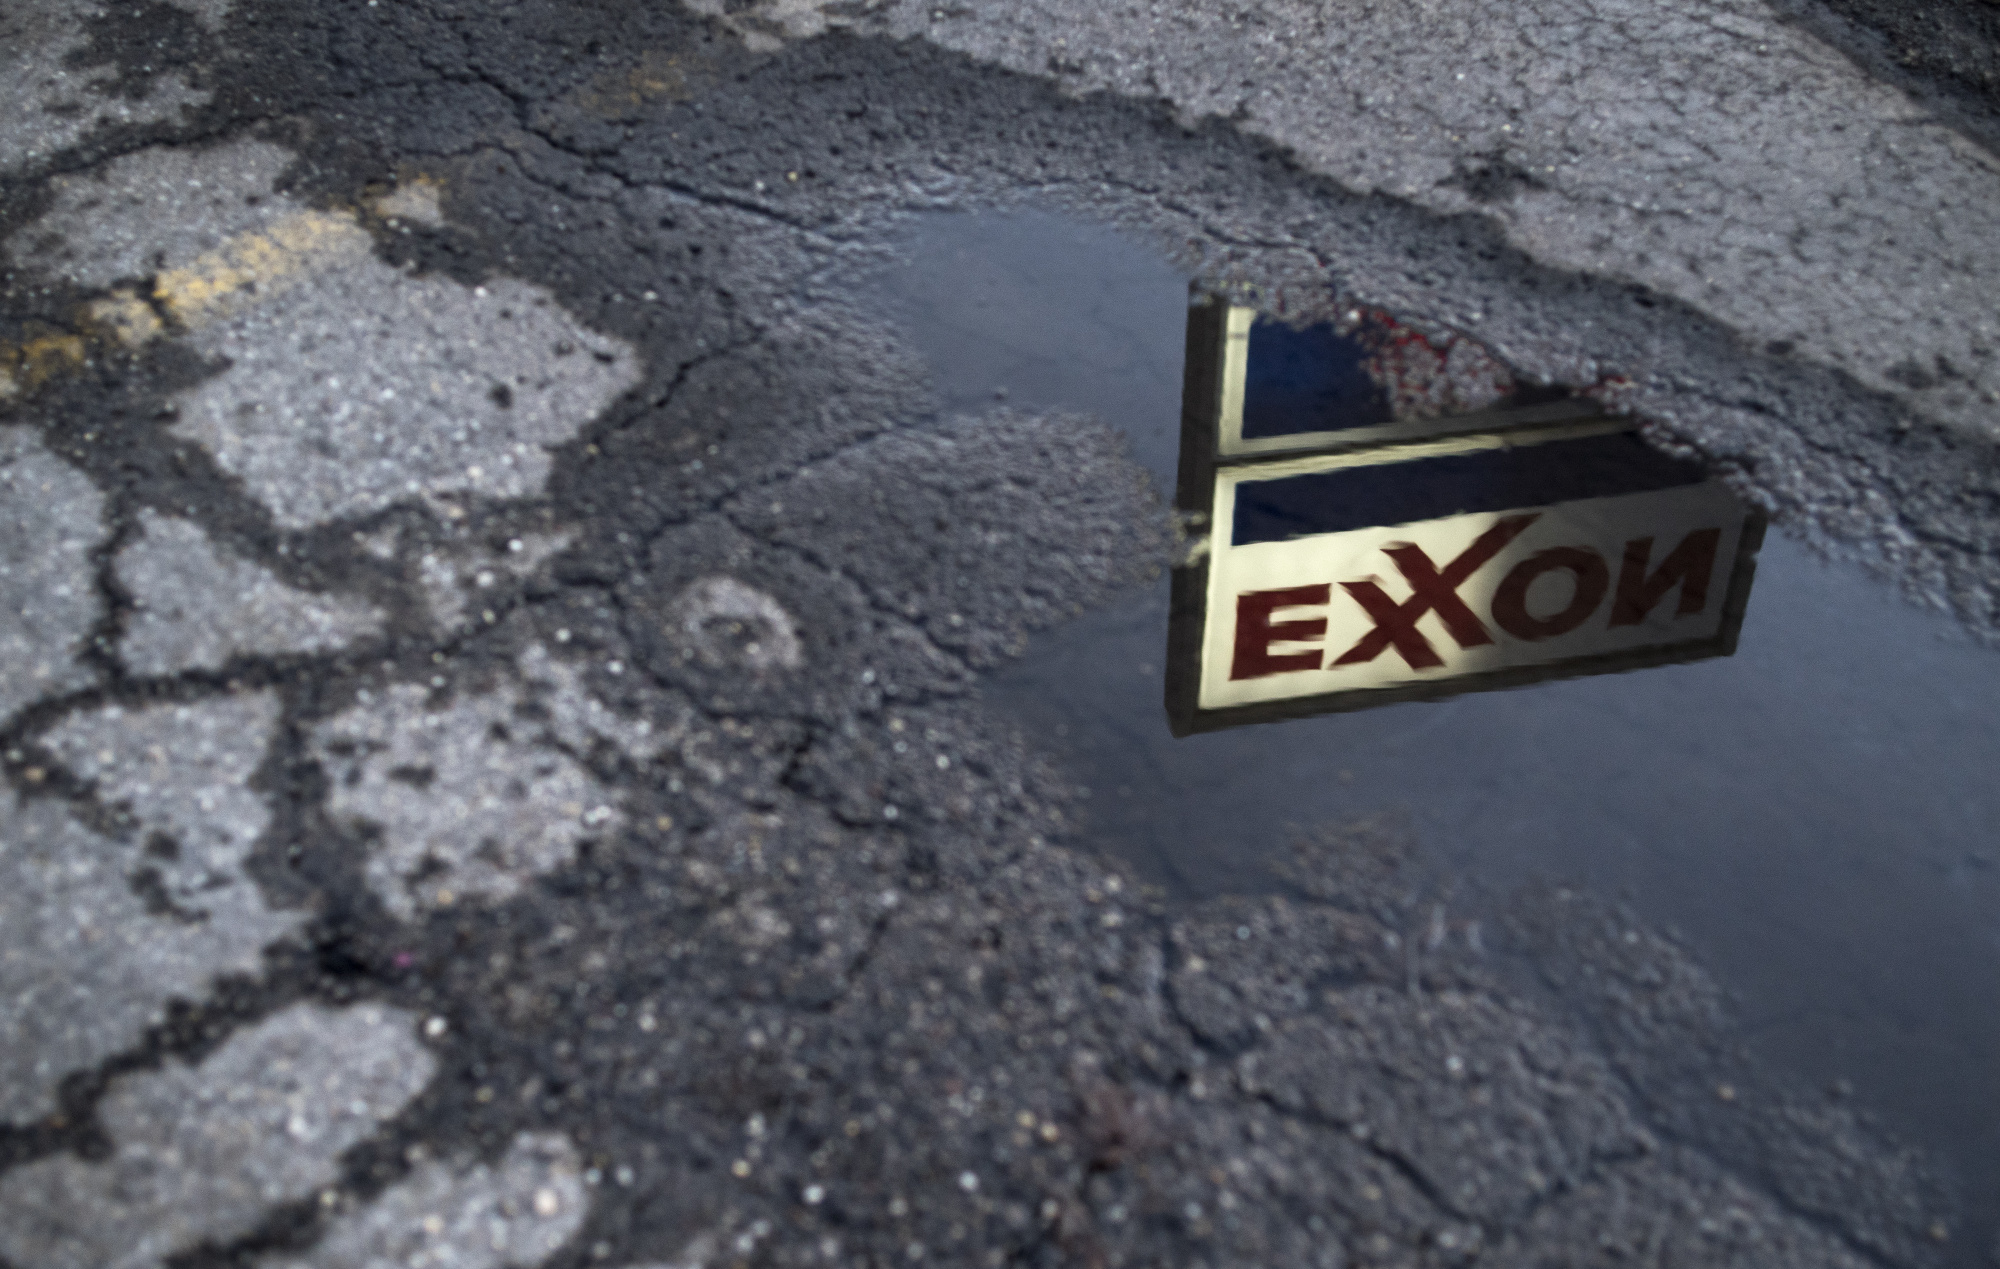 Exxon Mobil Corp. signage is reflected in a puddle at a gas station in Nashport, Ohio, U.S., on Friday, Jan. 26, 2018. Exxon Mobil Corp. is scheduled to release earnings figures on February 2. Photographer: Ty Wright/Bloomberg